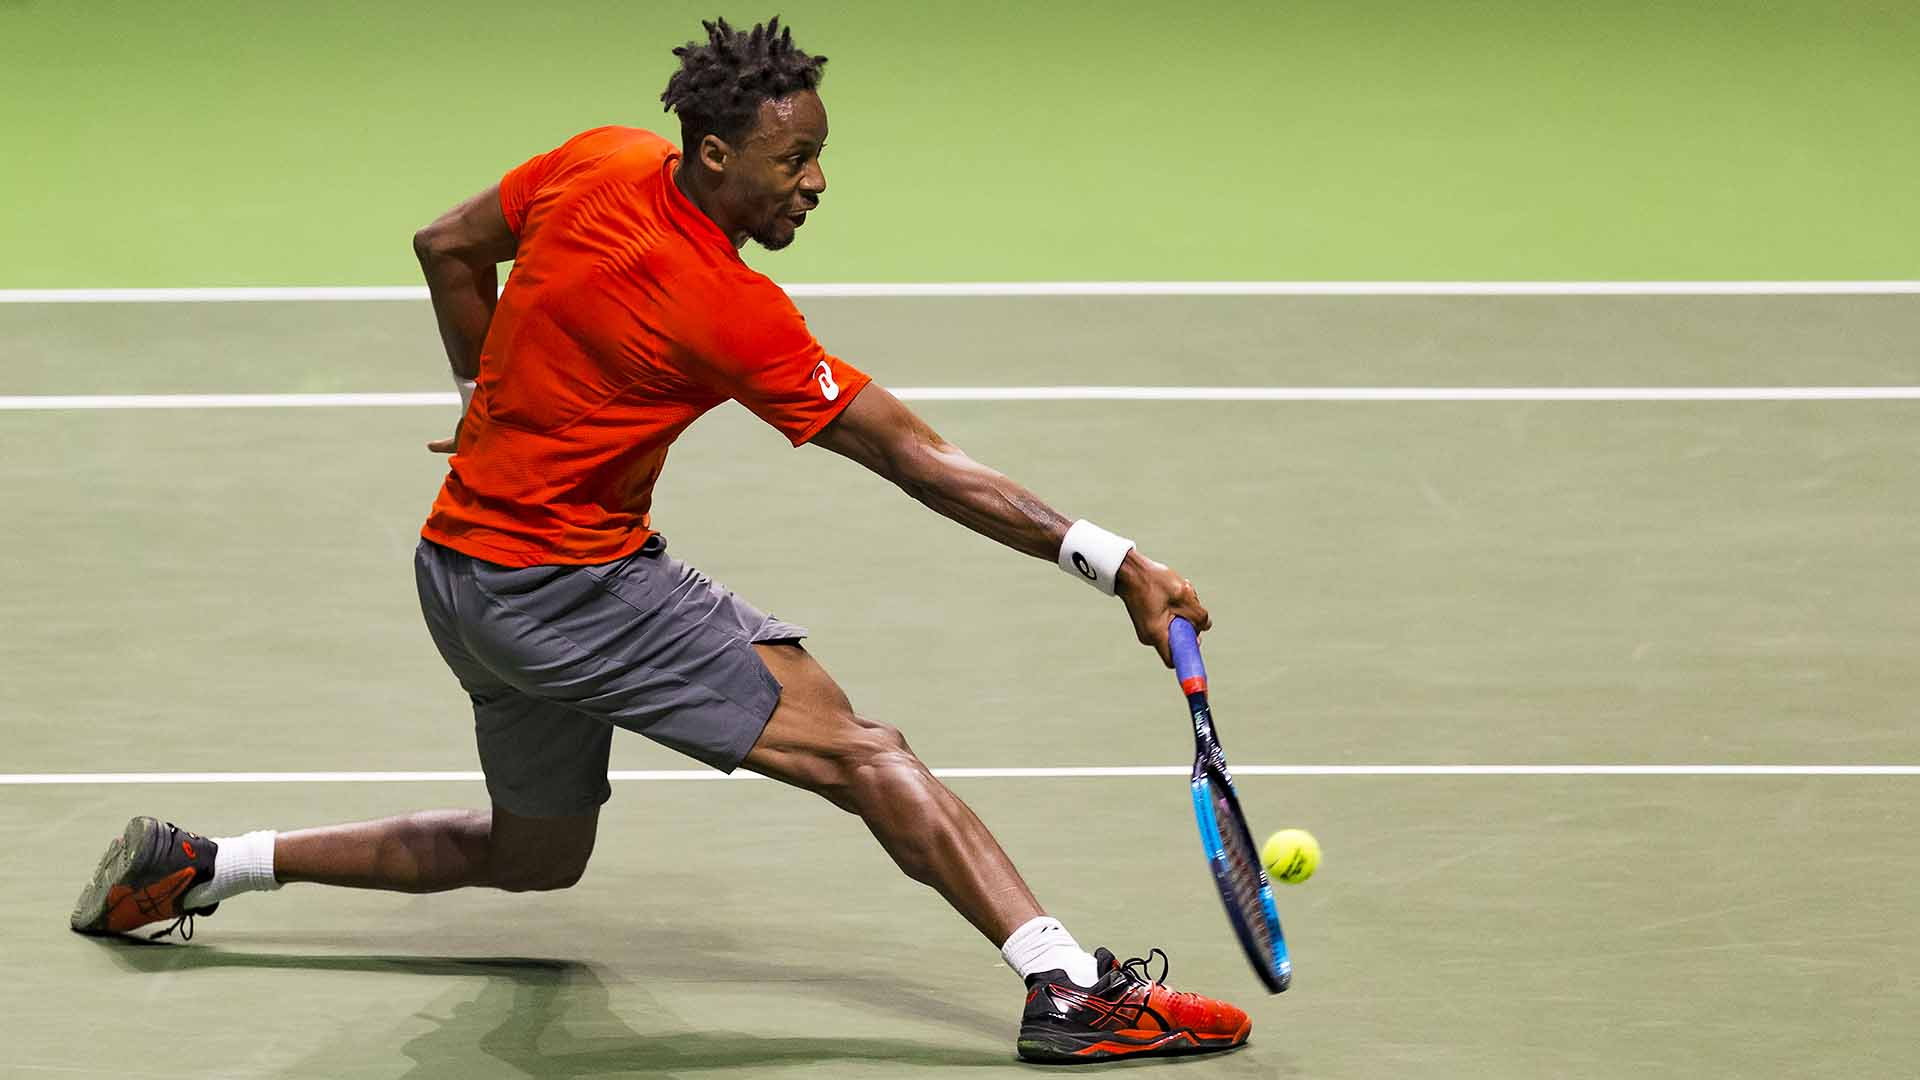 Gael Monfils beats Daniil Medvedev for the first time to reach the ABN AMRO World Tennis Tournament final on Saturday.